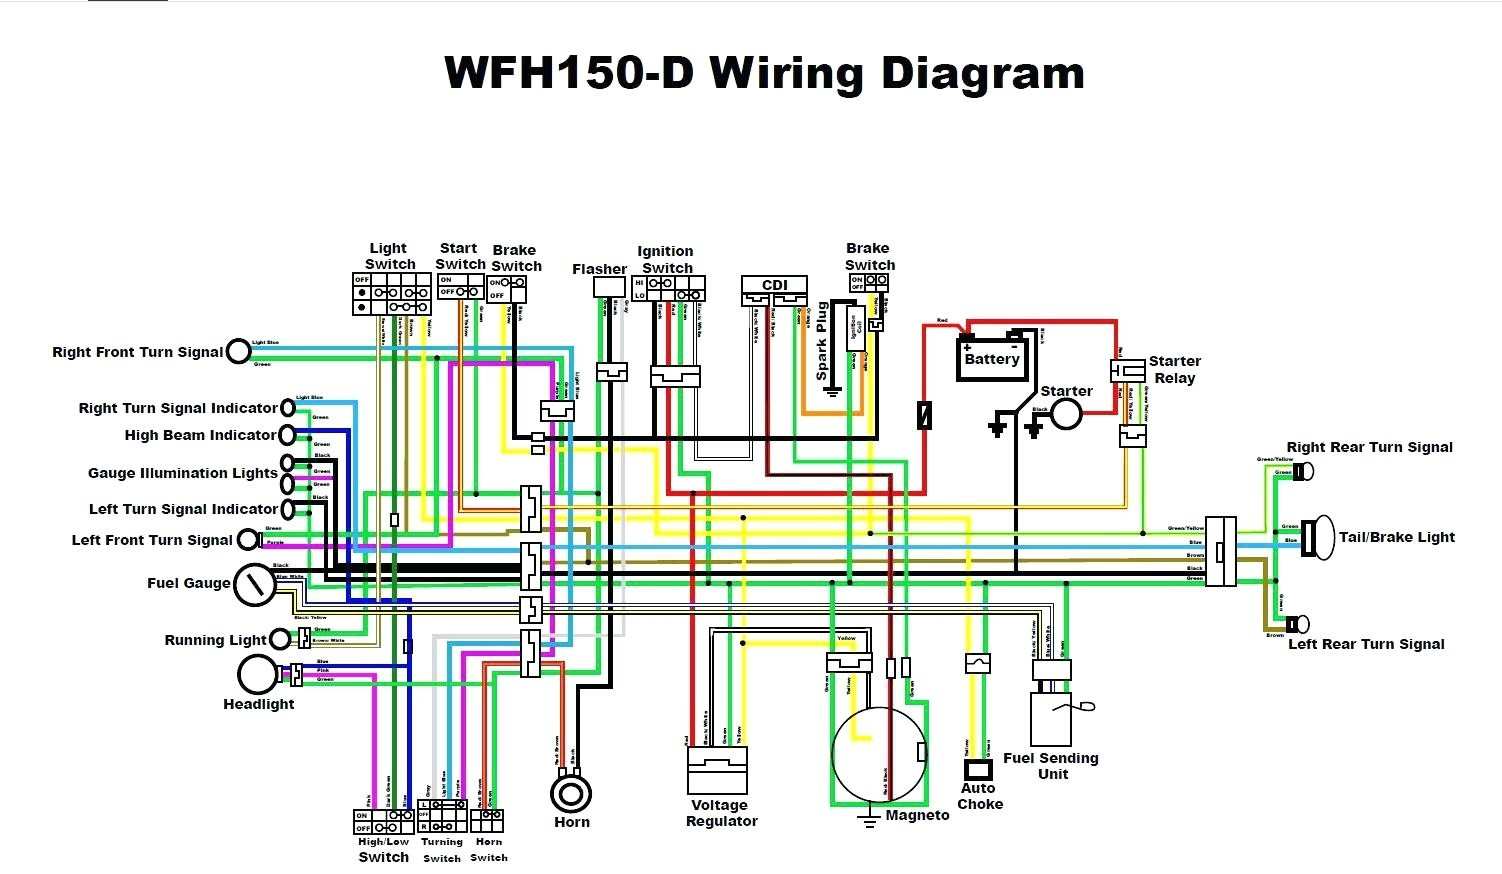 scooter ignition switch wiring diagram skateboard deck stator library